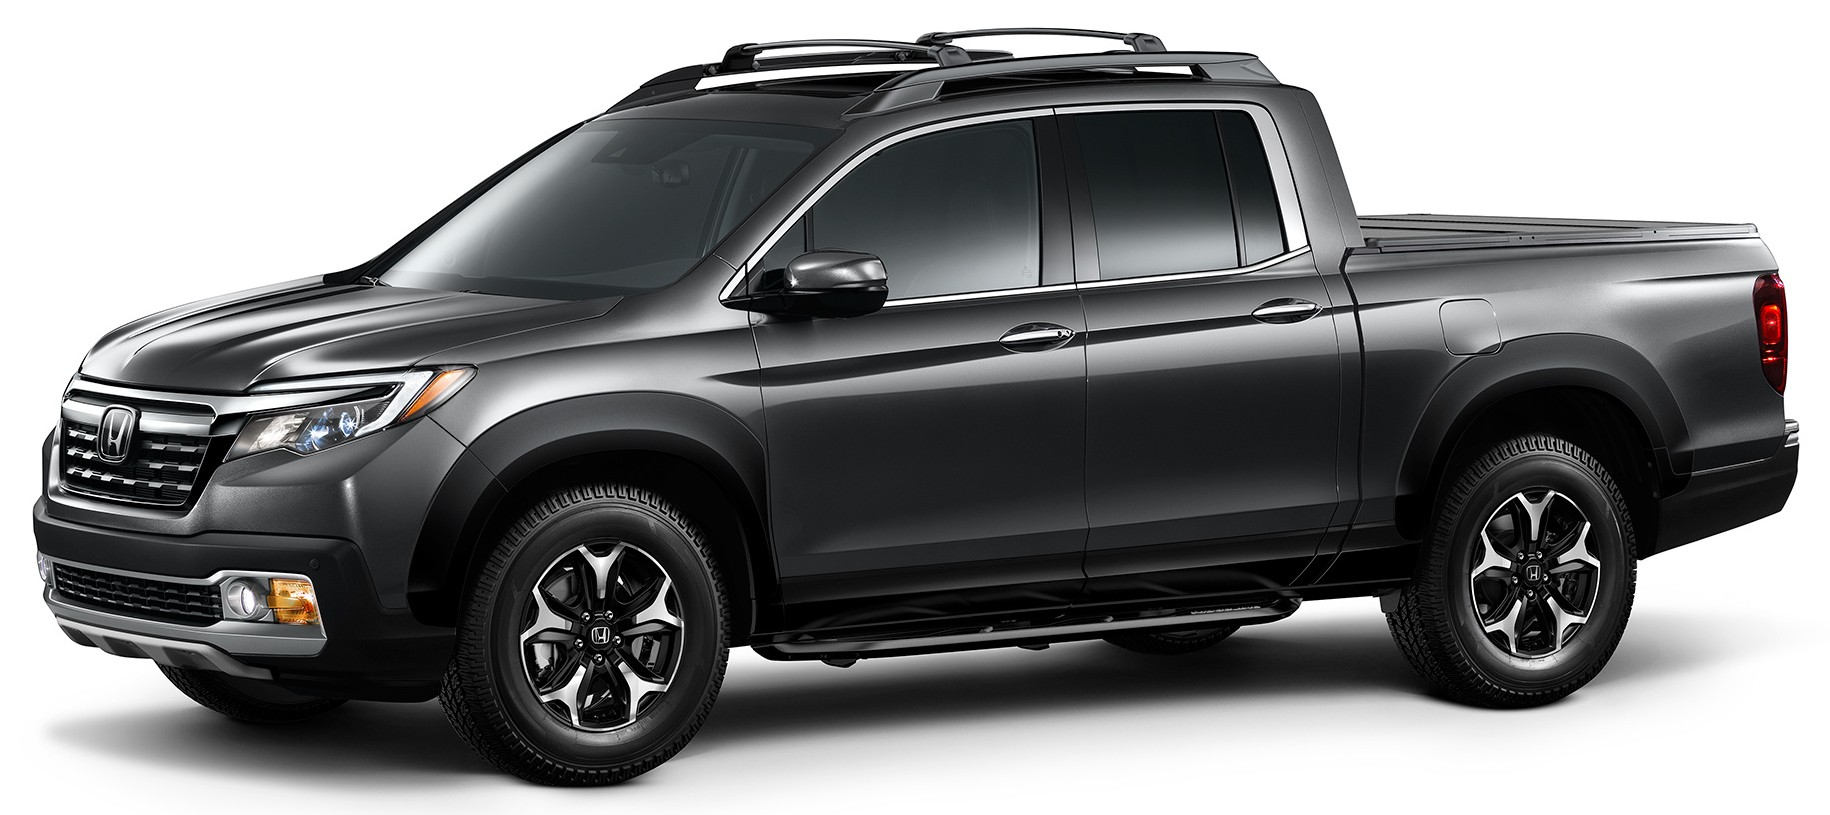 2017 honda ridgeline gains a range of accessories talking dog makes return to detail flatbed 39 s. Black Bedroom Furniture Sets. Home Design Ideas